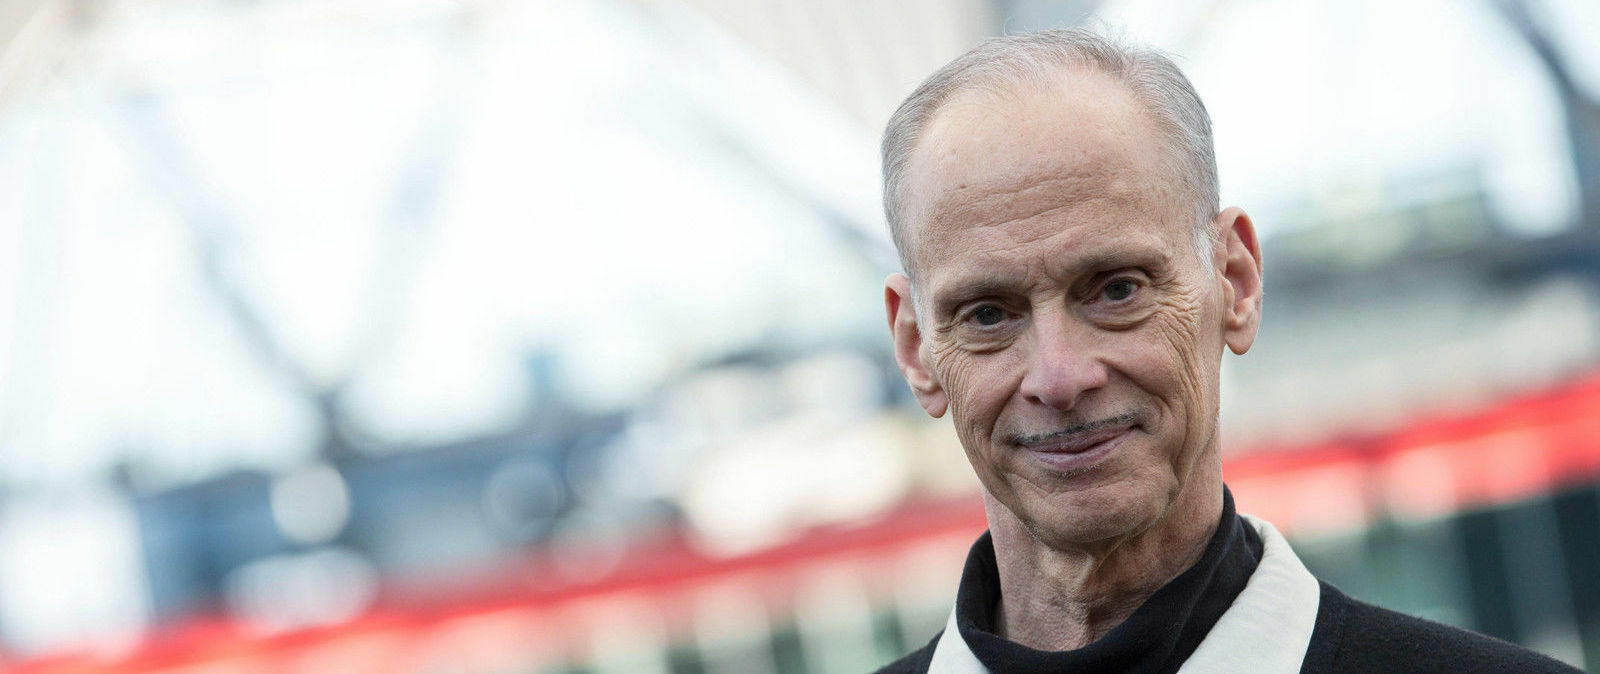 John Waters tickets on StubHub!